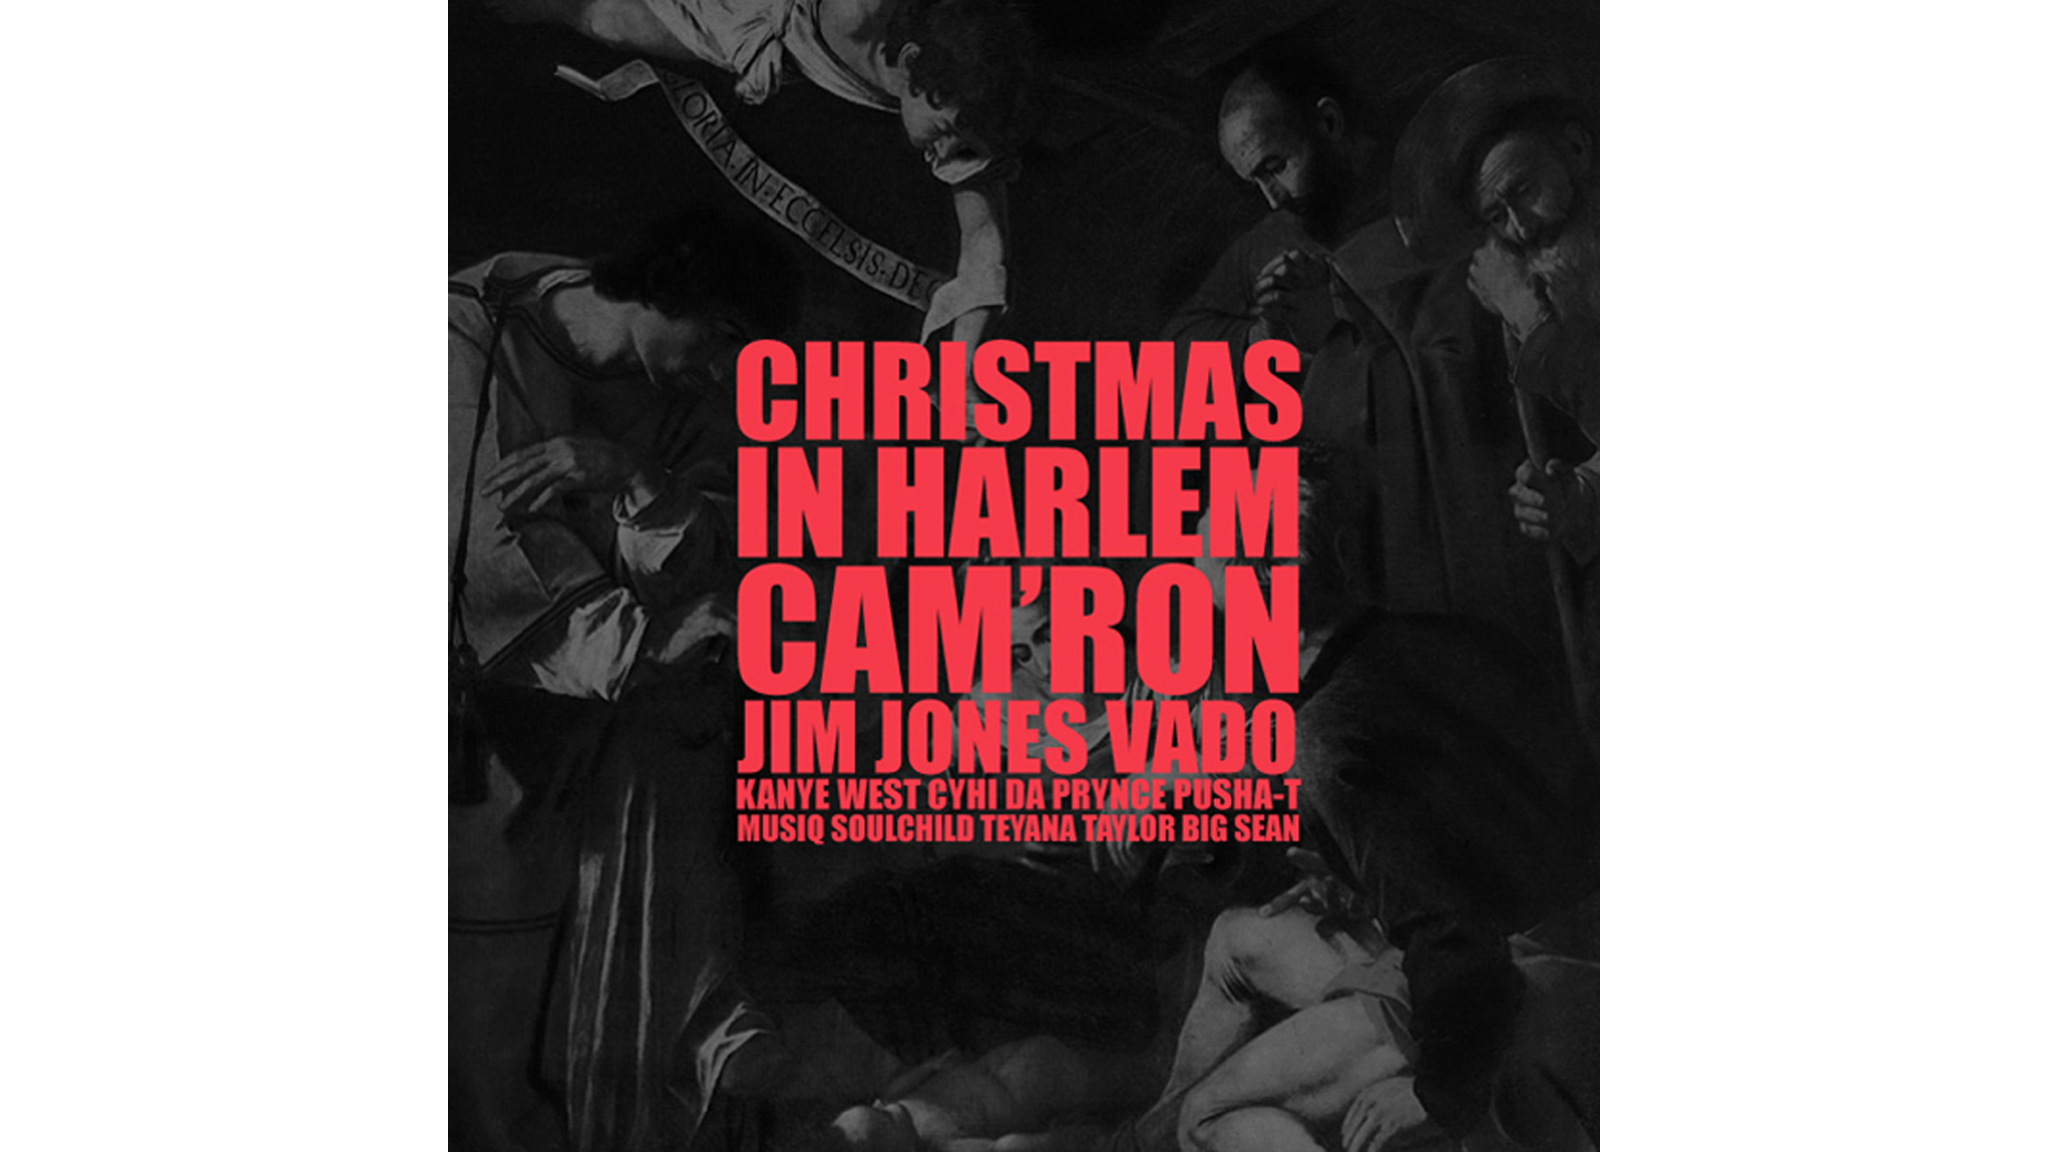 Kanye West – 'Christmas in Harlem' artwork